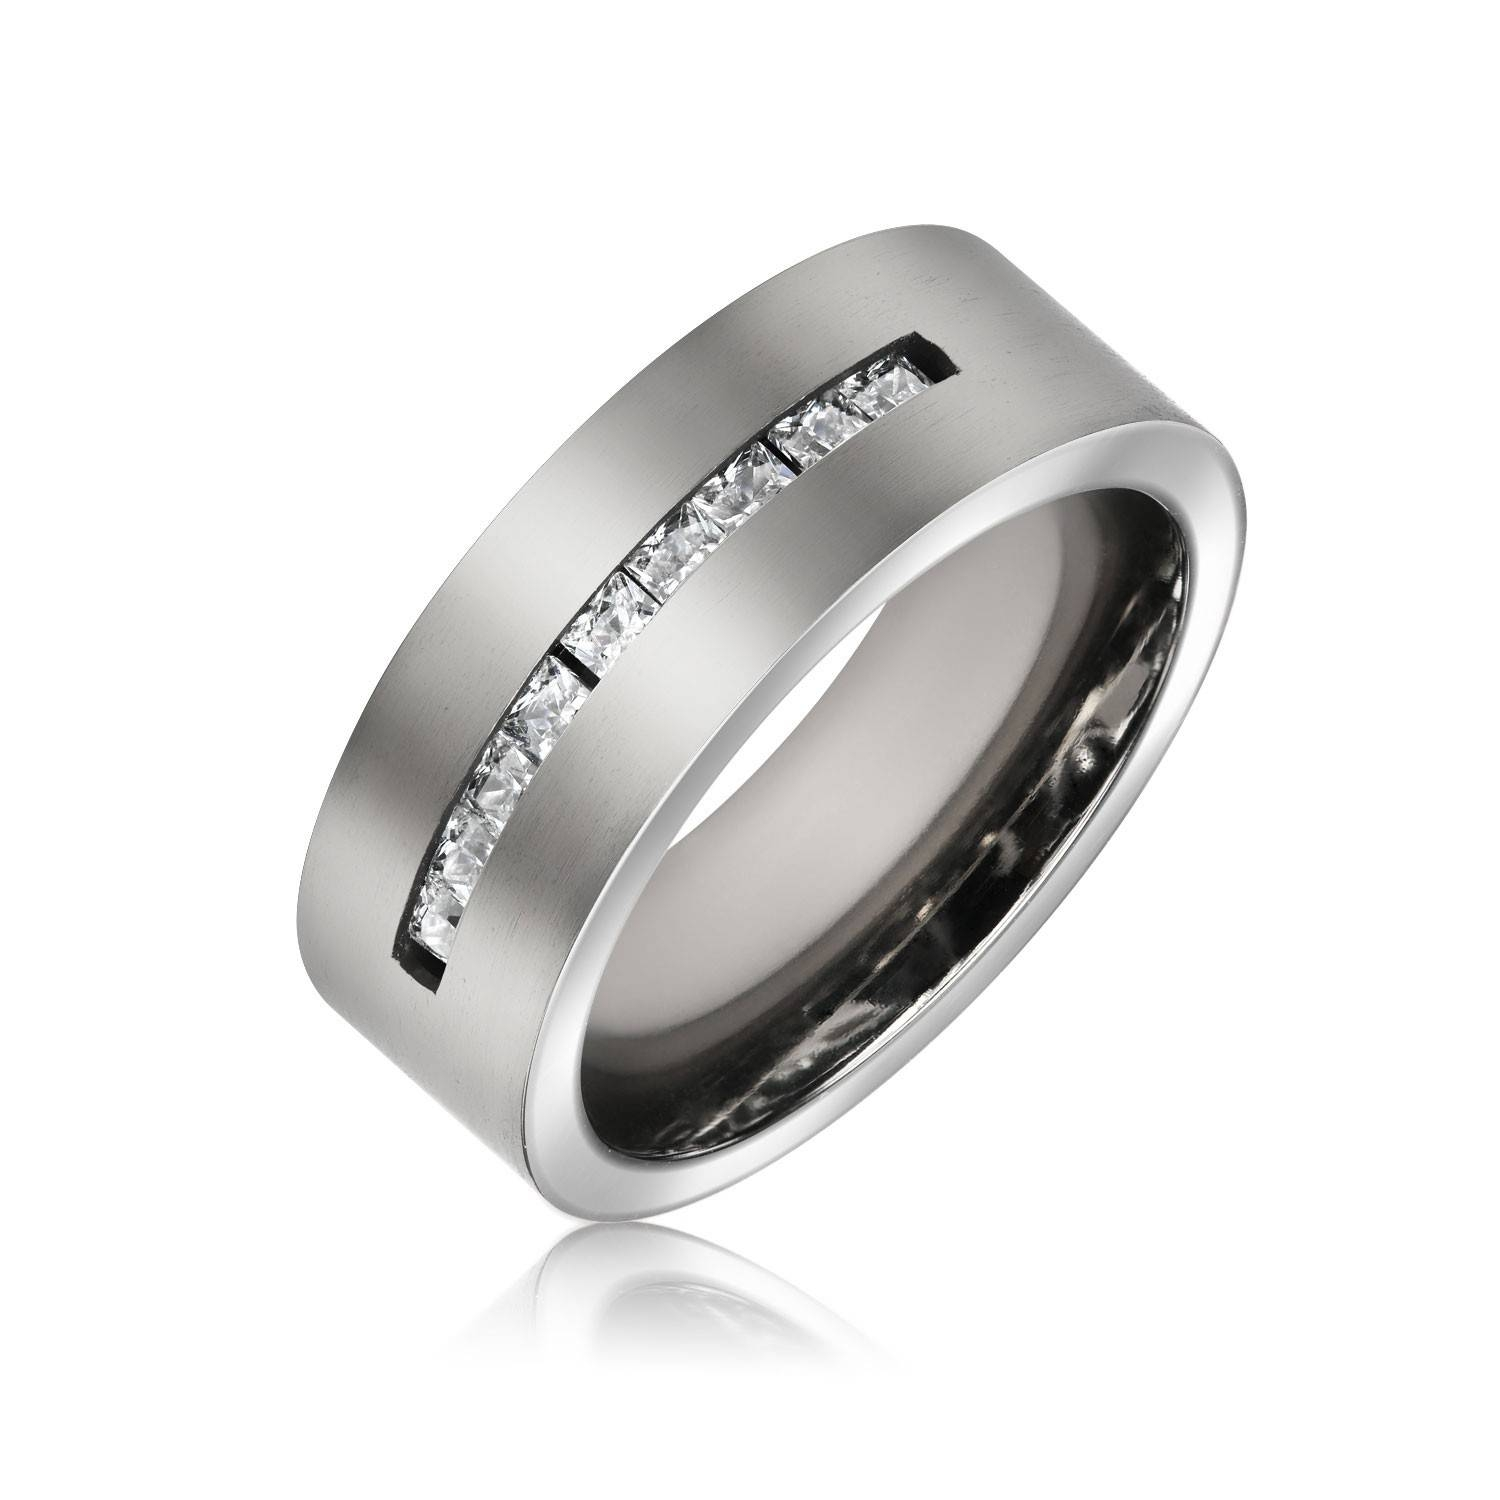 Sterling Silver Wedding Bands – Unique Wedding Bands For Men & Women Throughout Male Silver Wedding Bands (View 13 of 15)